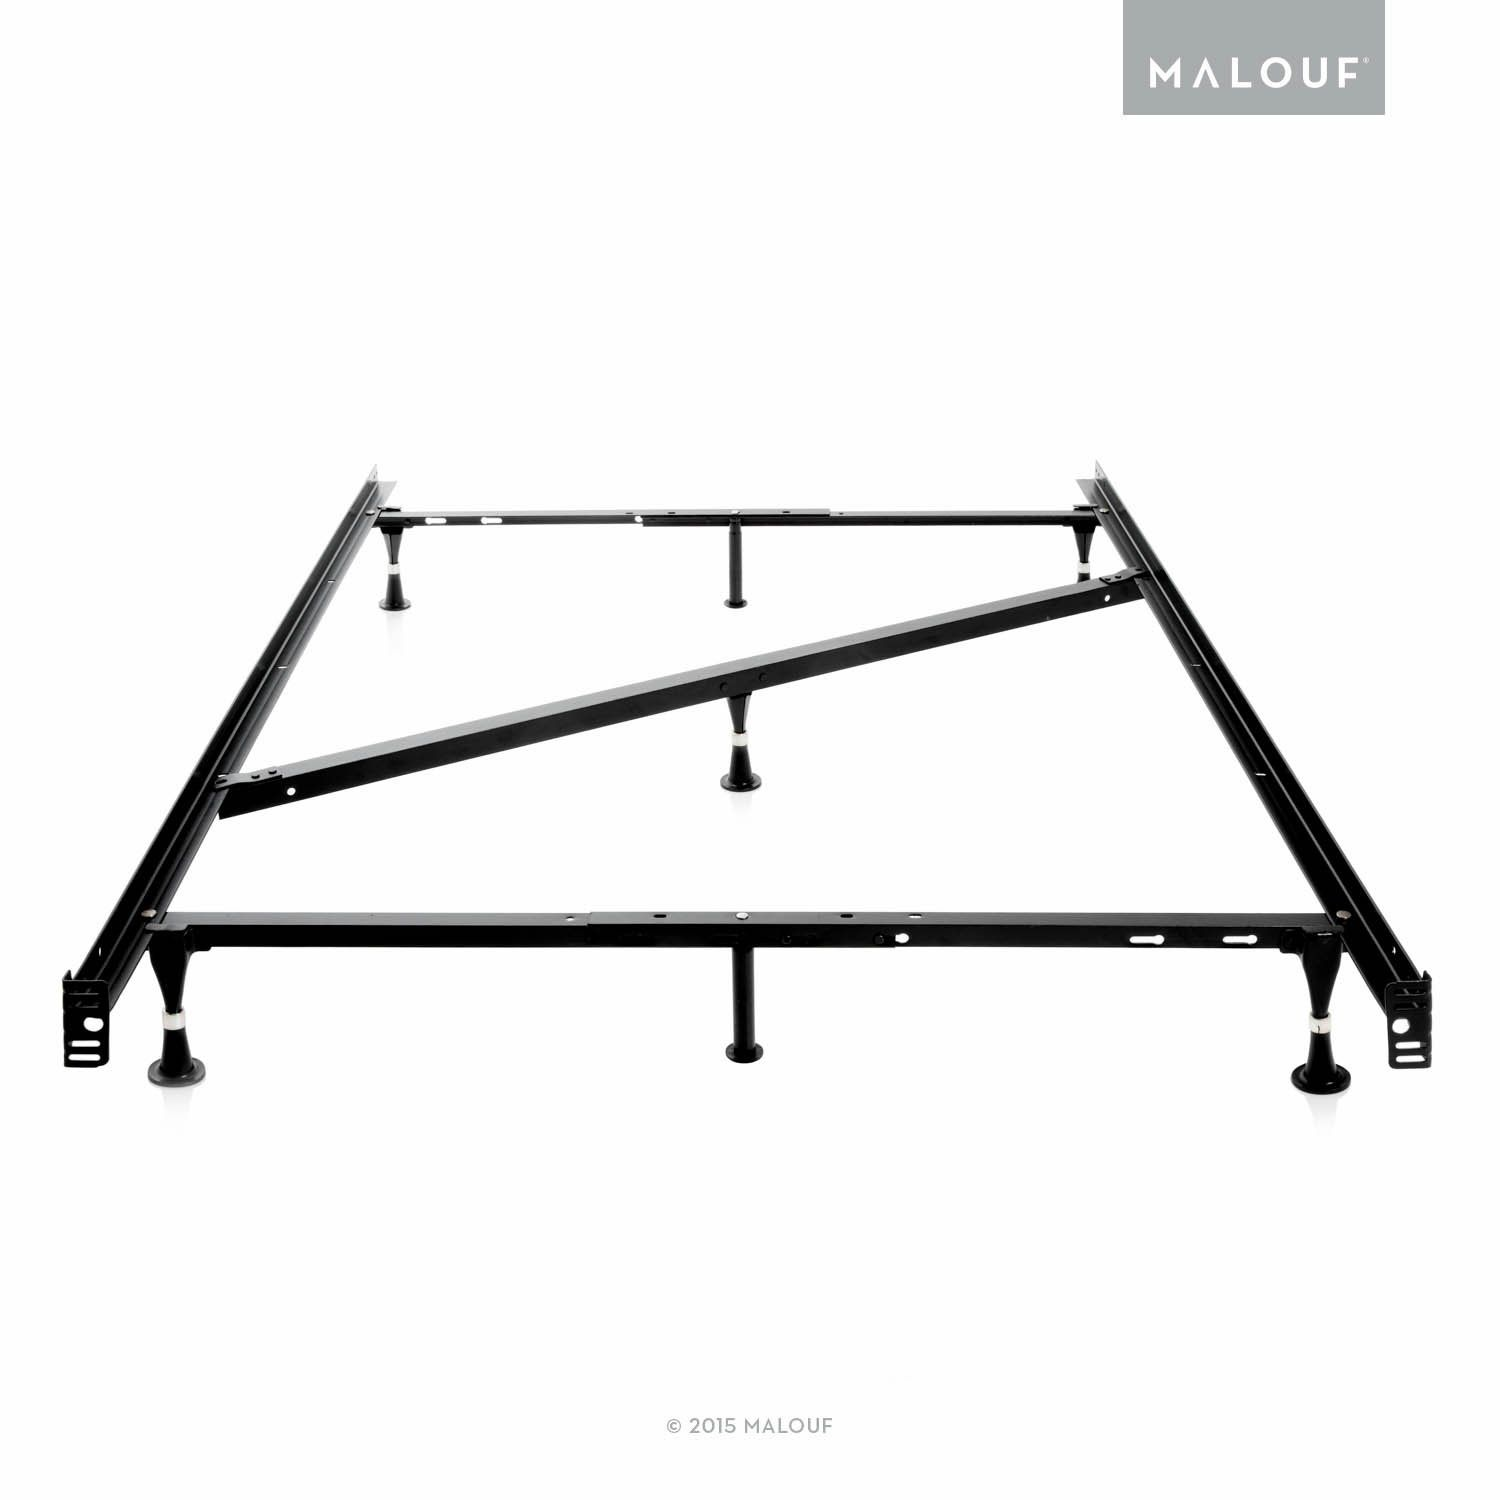 Structures Heavy Duty Adjustable Metal Bed Frame With 7 Legs